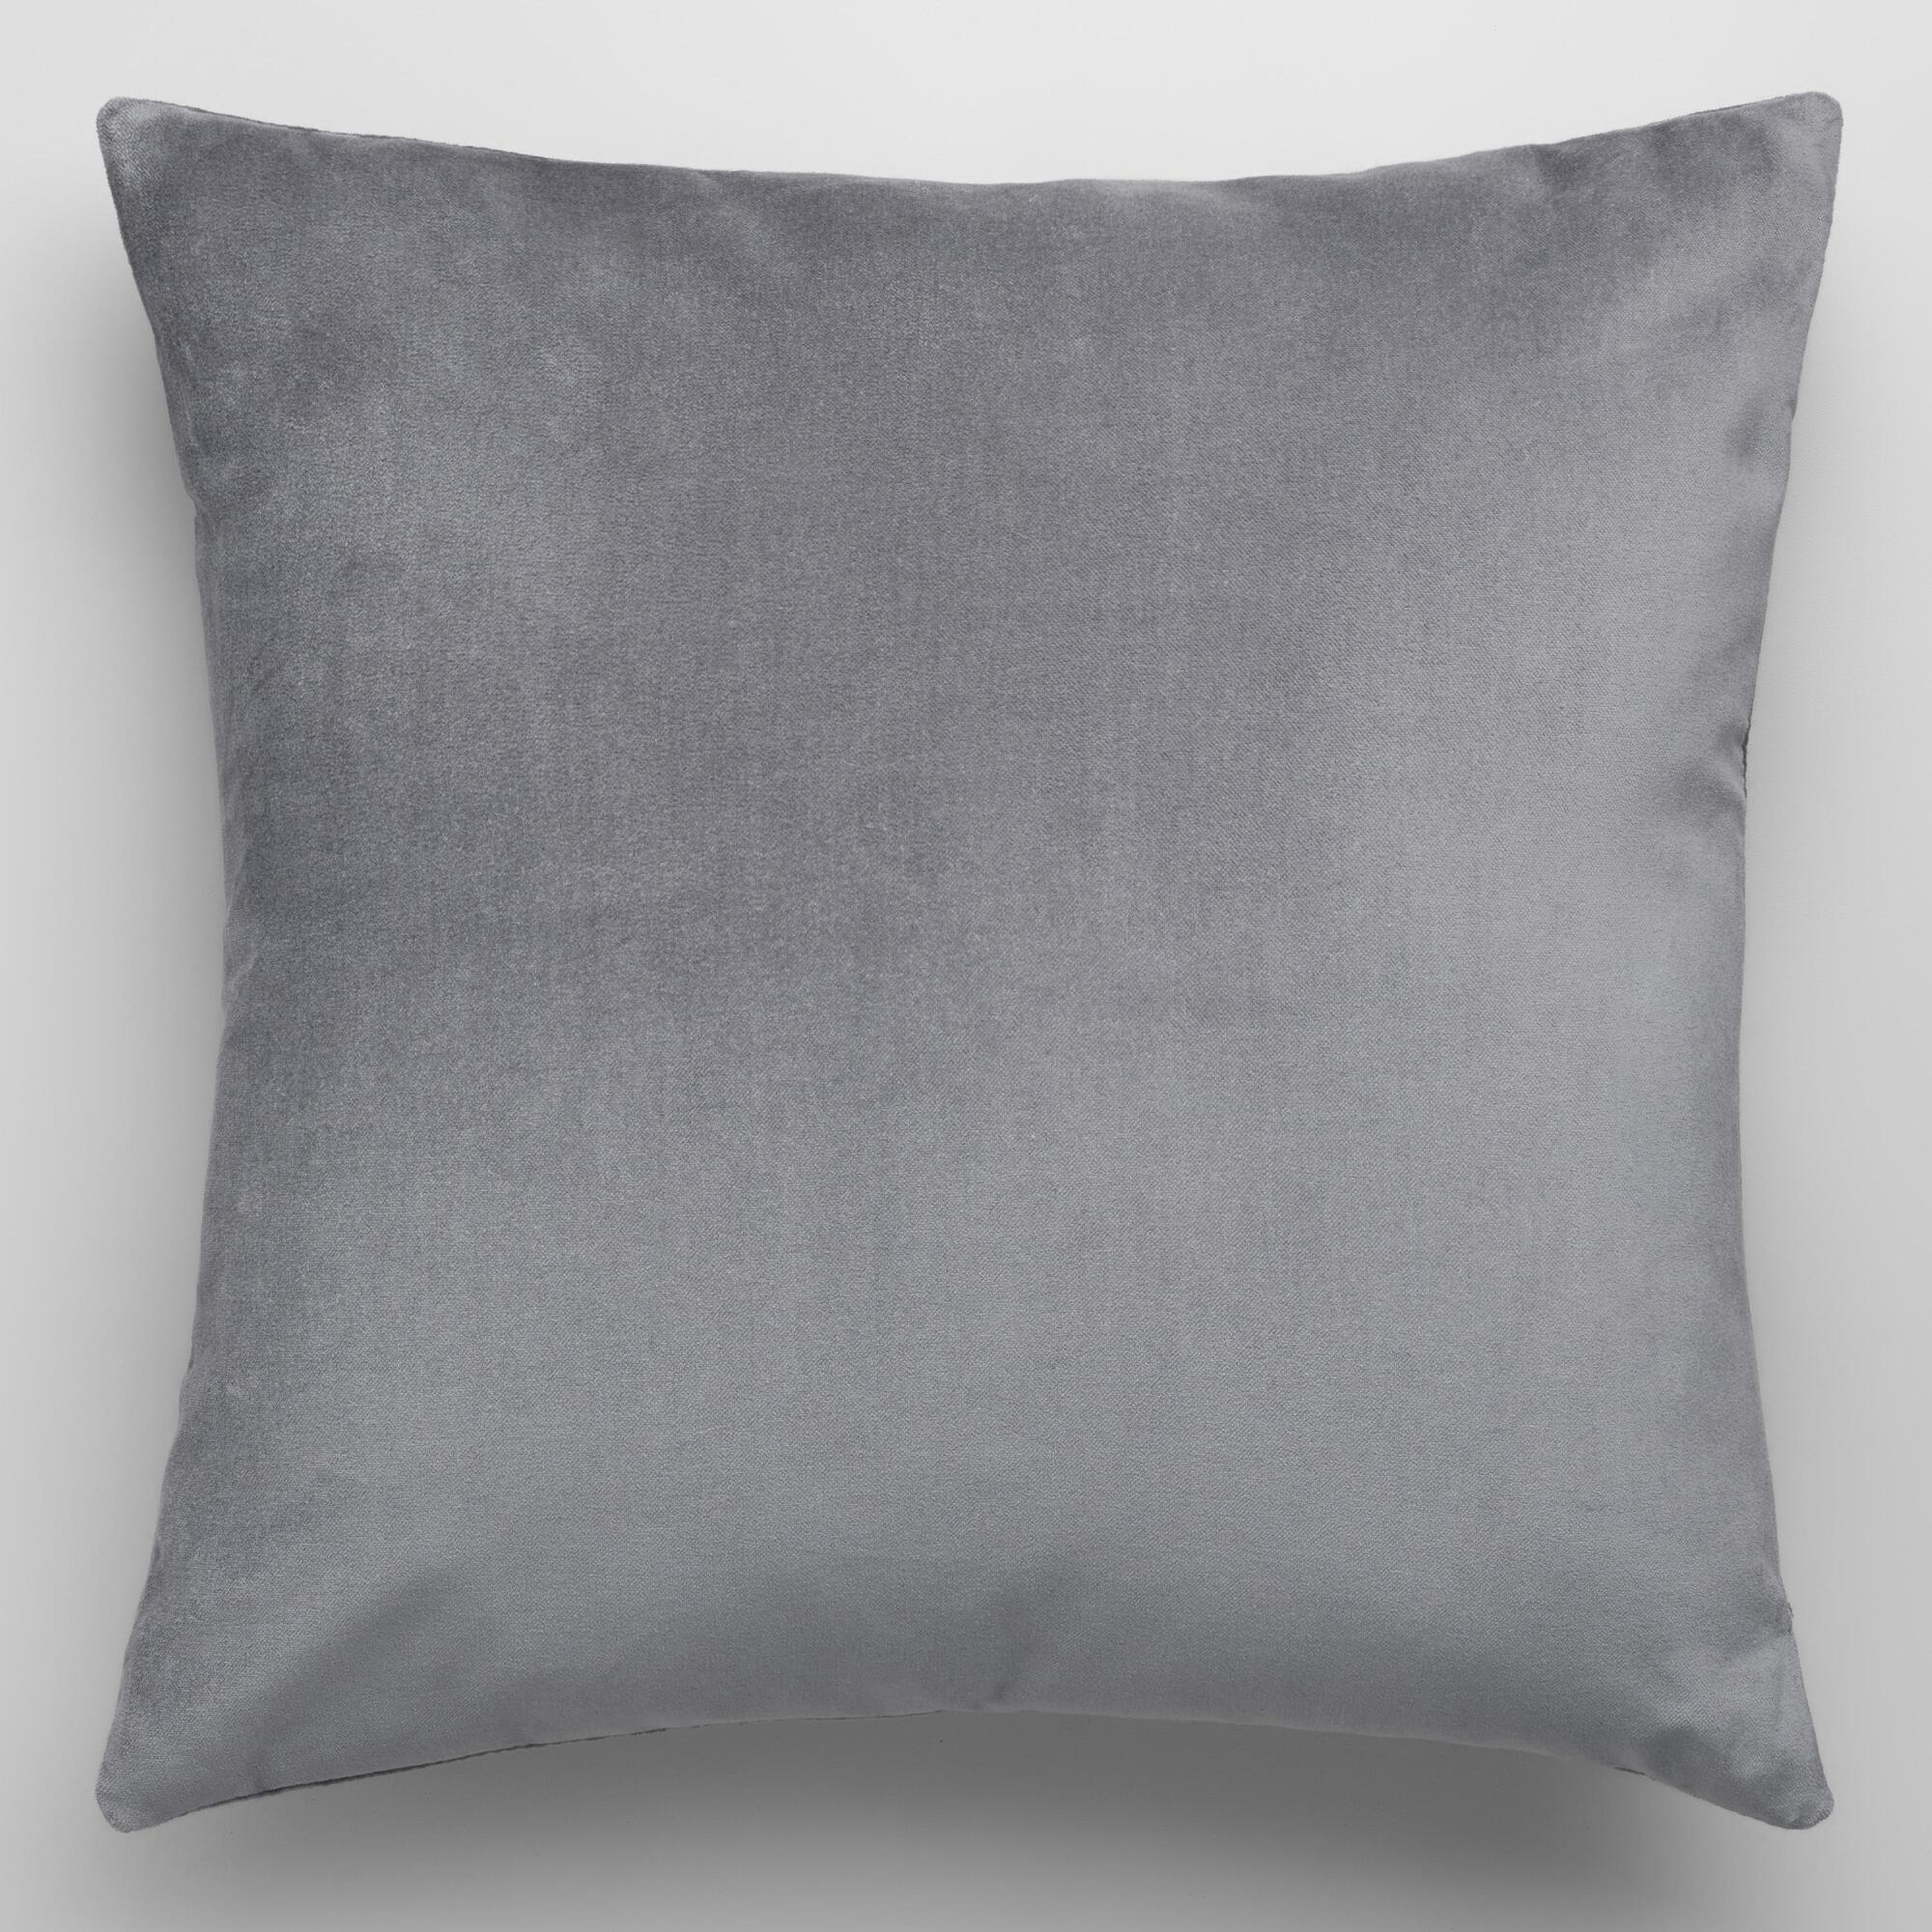 Blue decorative bed pillows - Tornado Gray Velvet Throw Pillow